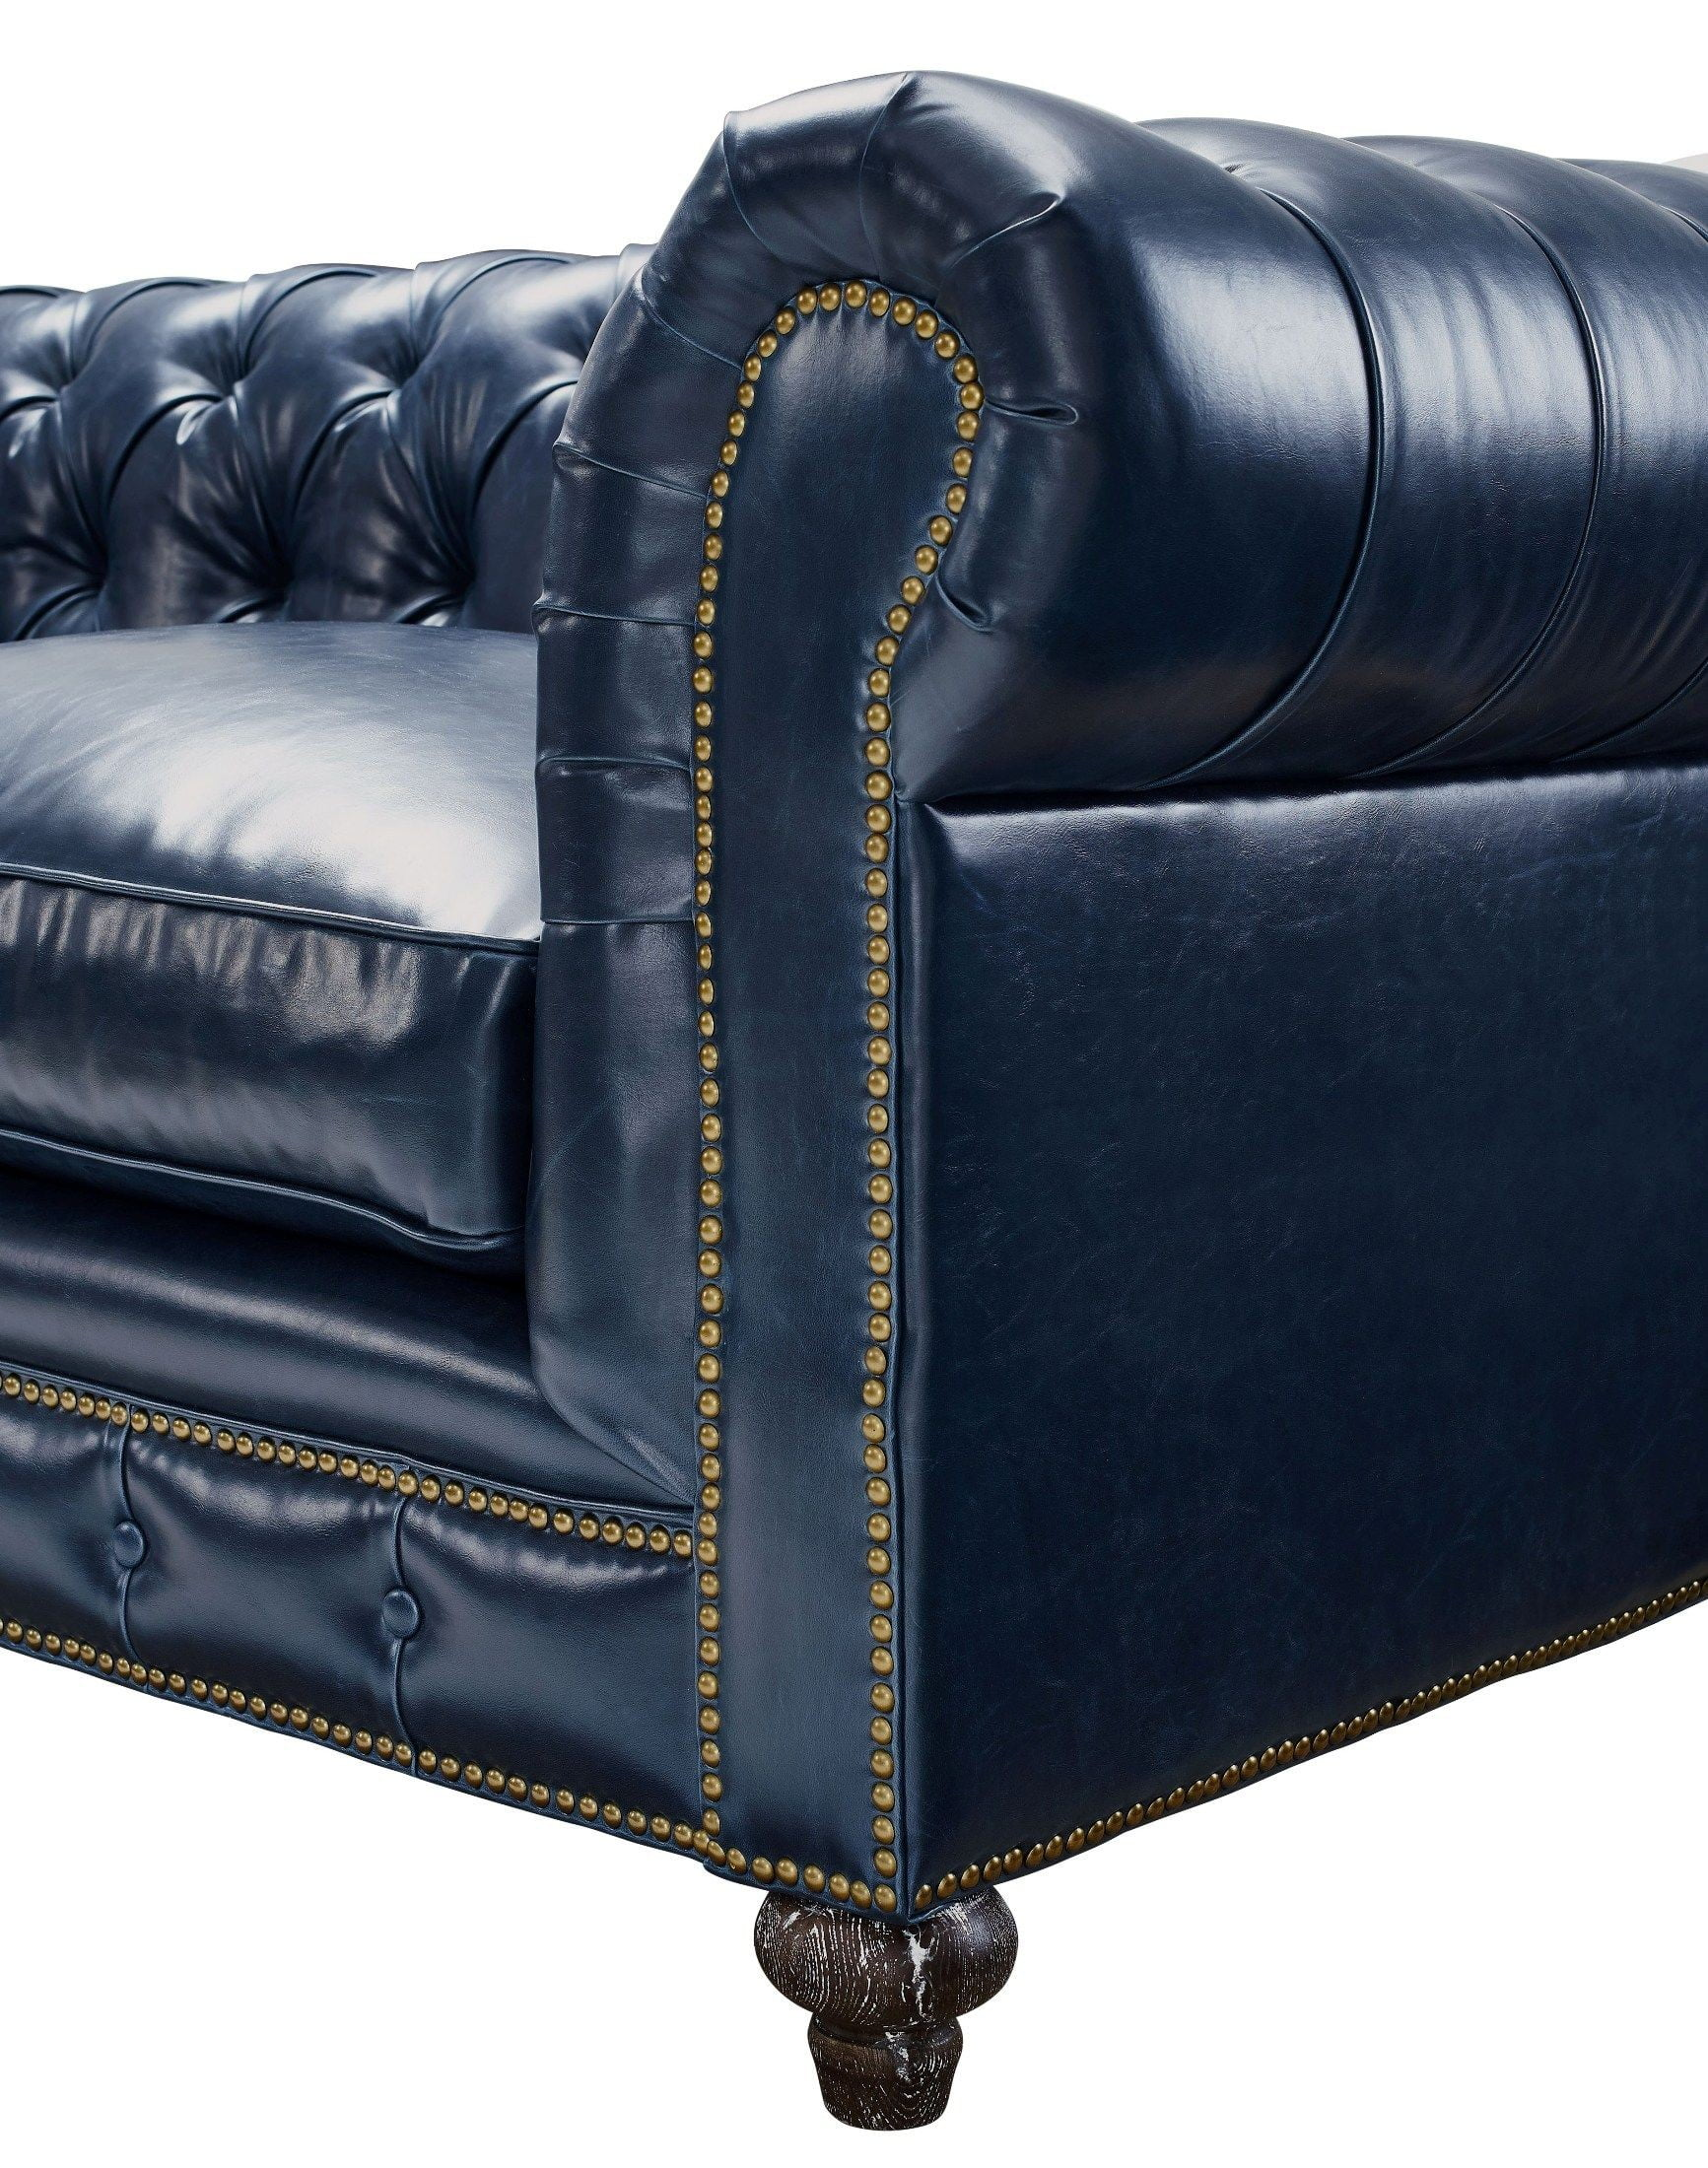 Durango Rustic Blue Leather Living Room Set From Tov S38